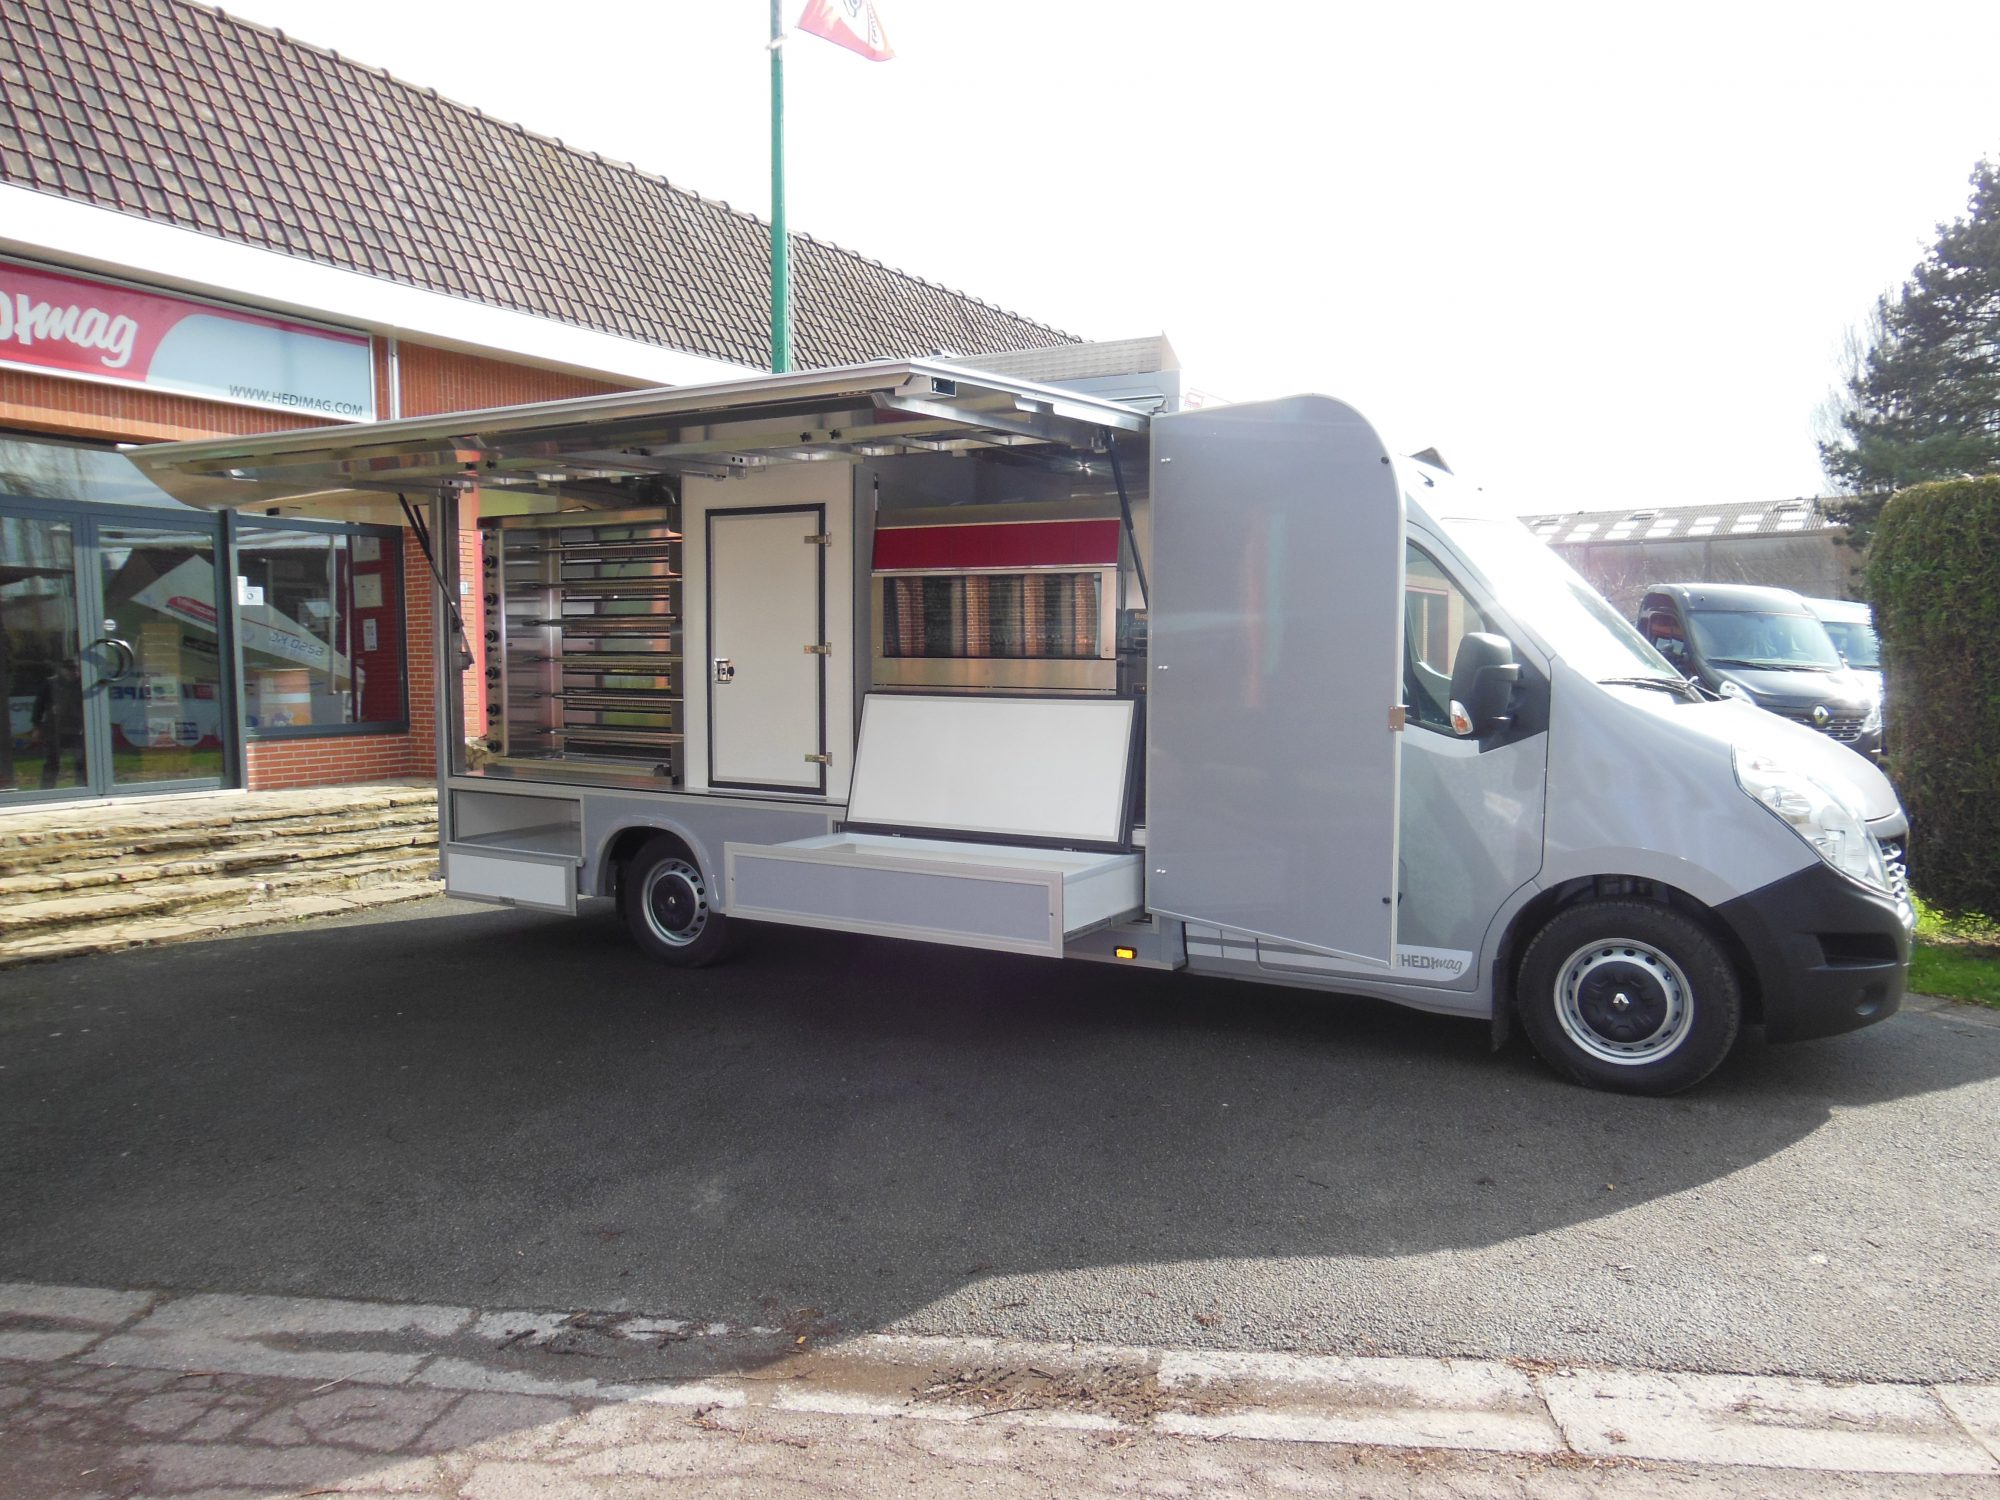 Camion rotisserie version standard  Hedimag fabricant de commerce mobile